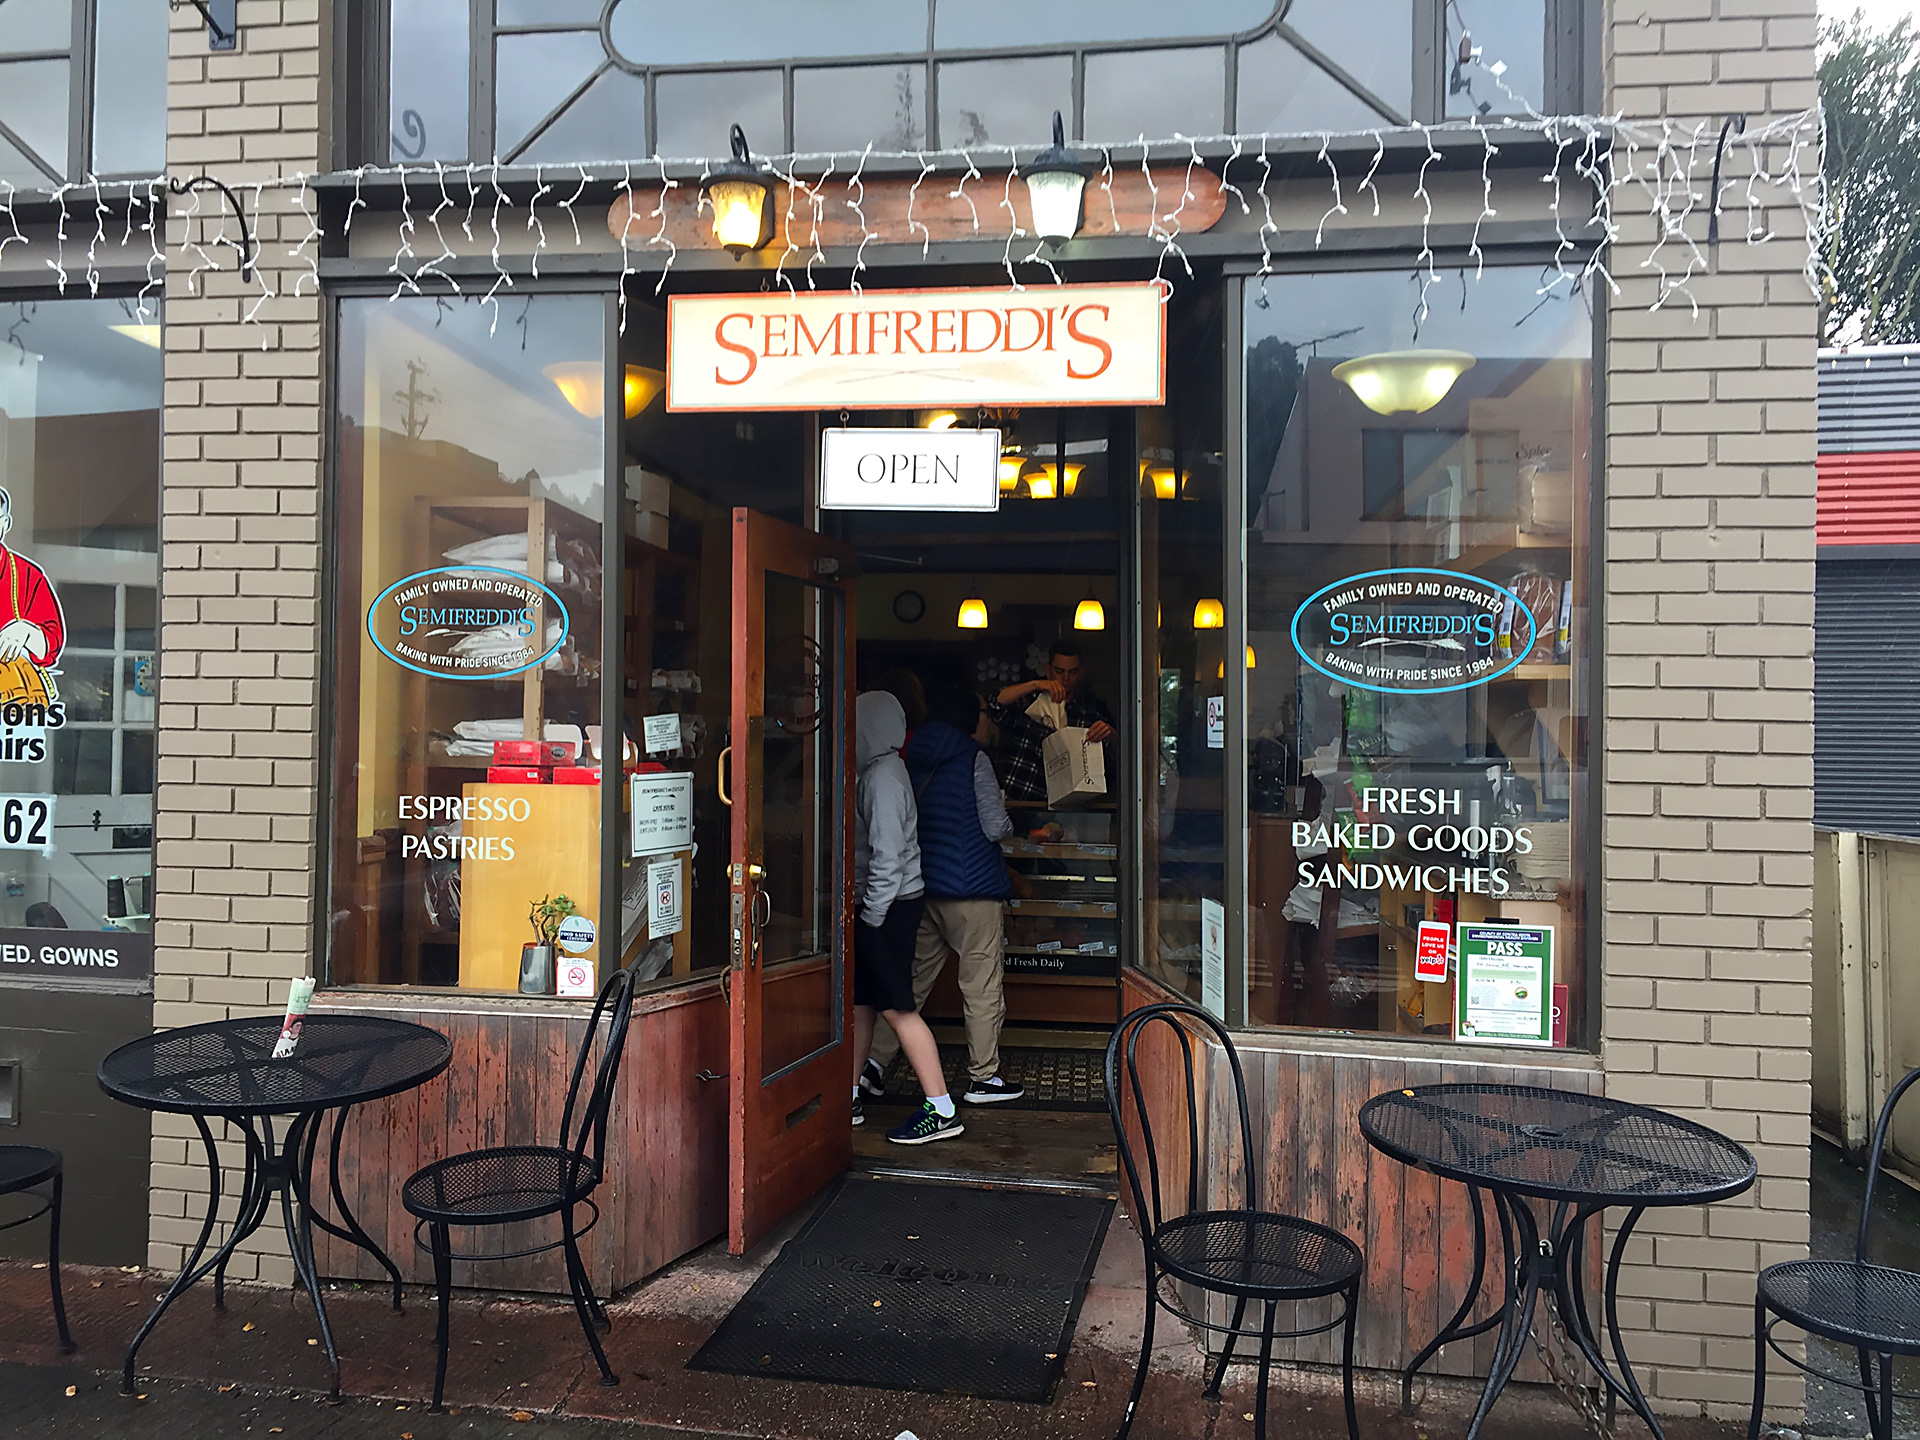 Semifreddi's cafe in Kensington